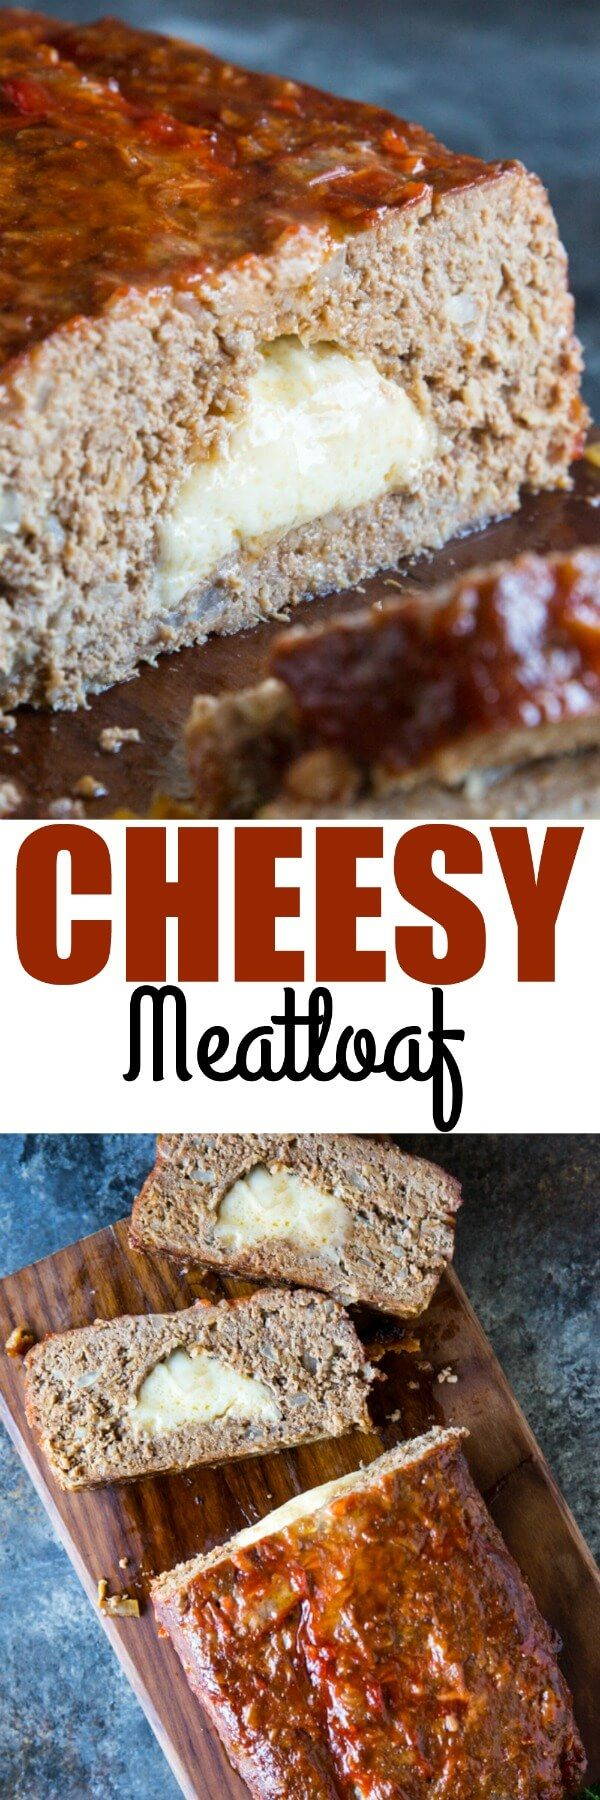 Mom's best 6-ingredient meatloaf is now the ultimate comfort food: Stuffed with cheese! Double the recipe; you'll want leftovers for sandwiches! via @culinaryhill